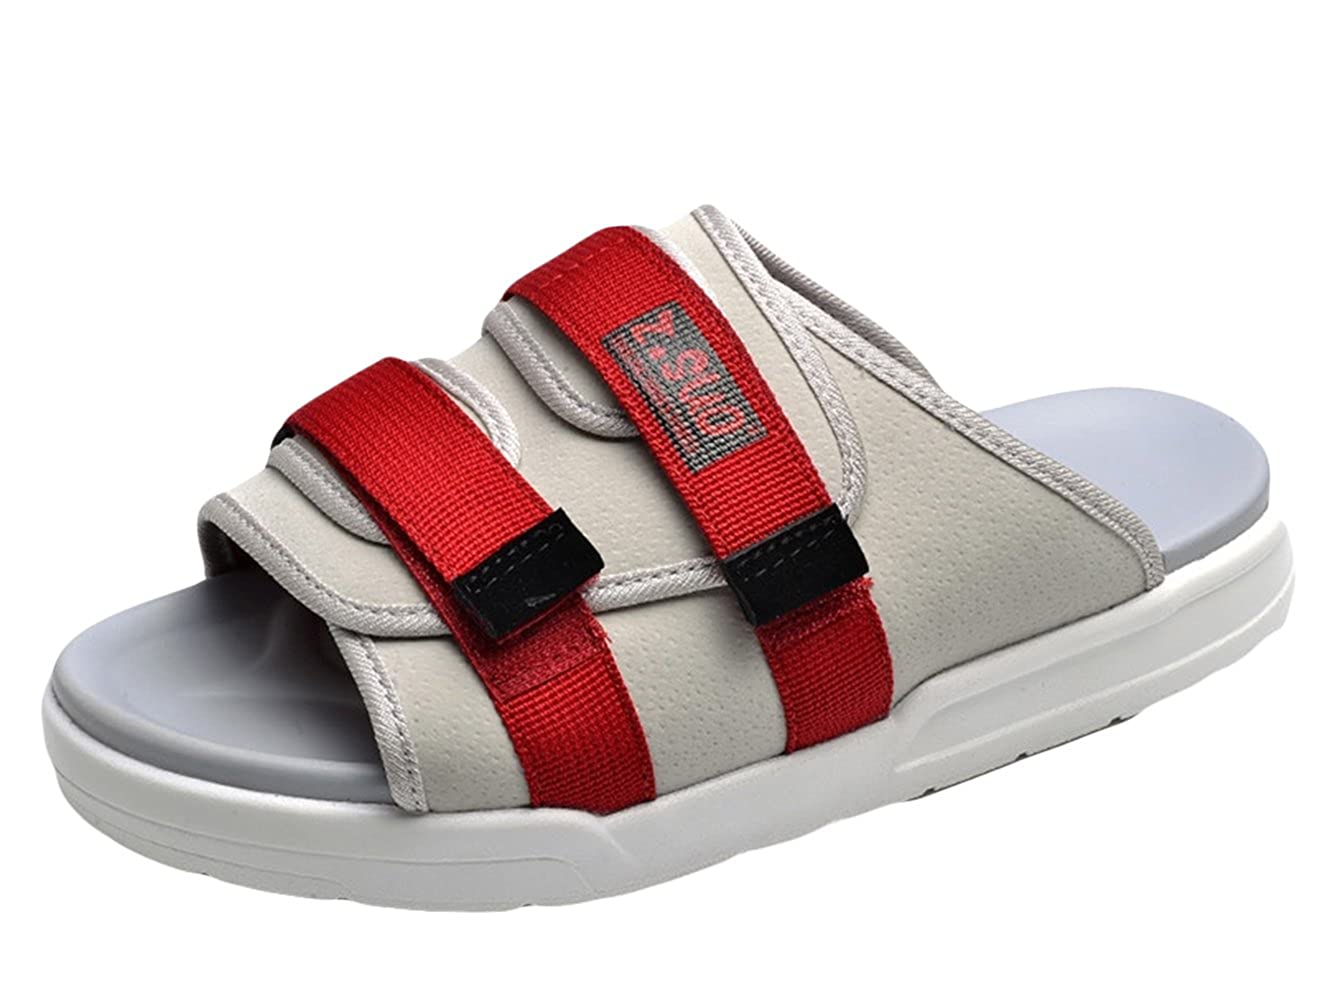 3c2aa246adad ONCEFIRST Unisex Sandals Slides with Double Velcro Straps Summer Beach  Slippers  Amazon.ca  Shoes   Handbags